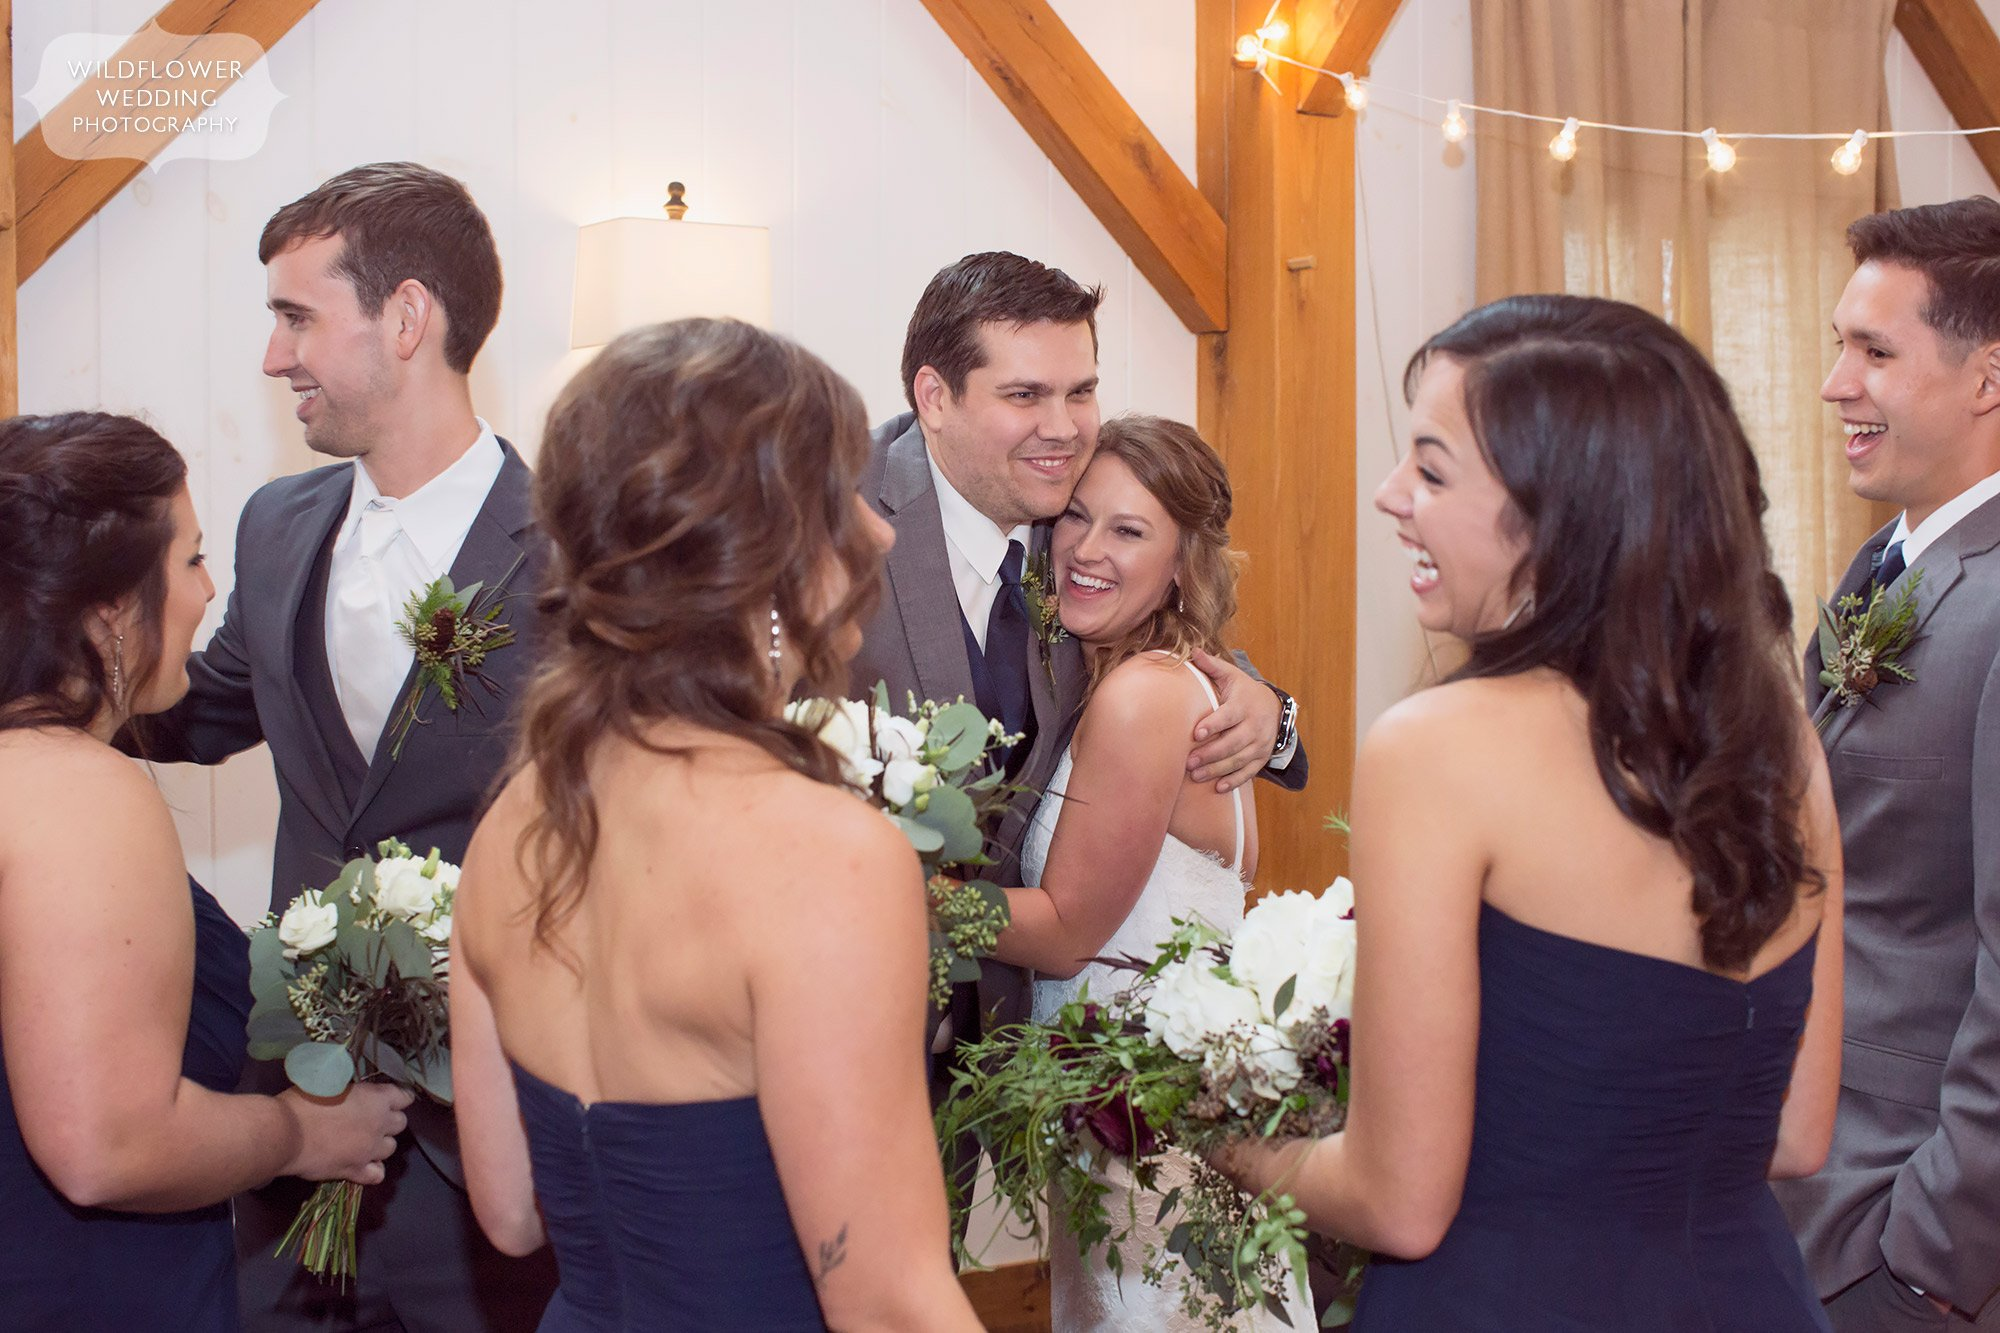 The wedding party congratulates the bride and groom at this rustic timber frame wedding venue in Fayette.